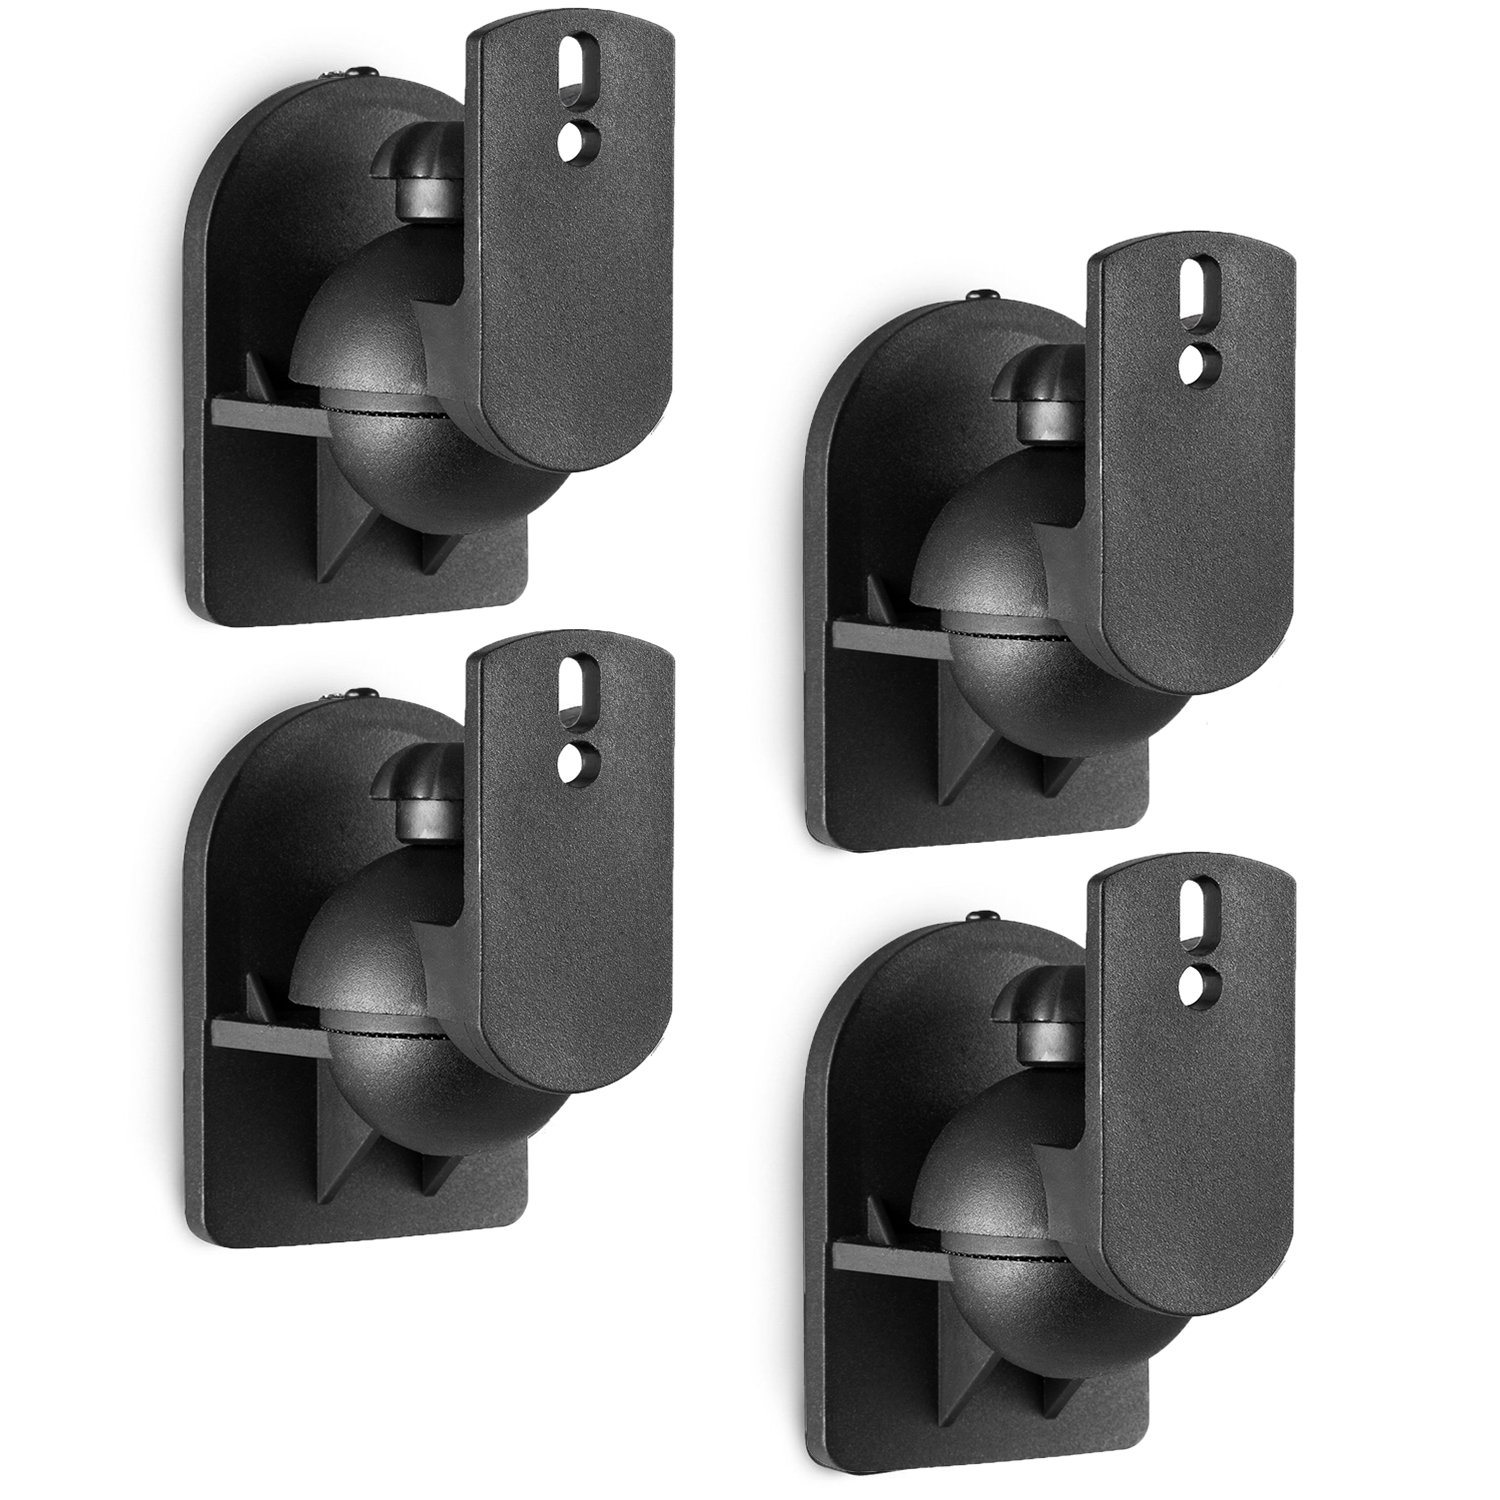 WALI Speaker Wall Mount Brackets Multiple Adjustments for Bookshelf, Surrounding Sound Speakers, Hold up to 7.7 lbs, (SWM402), 4 Packs, Black by WALI